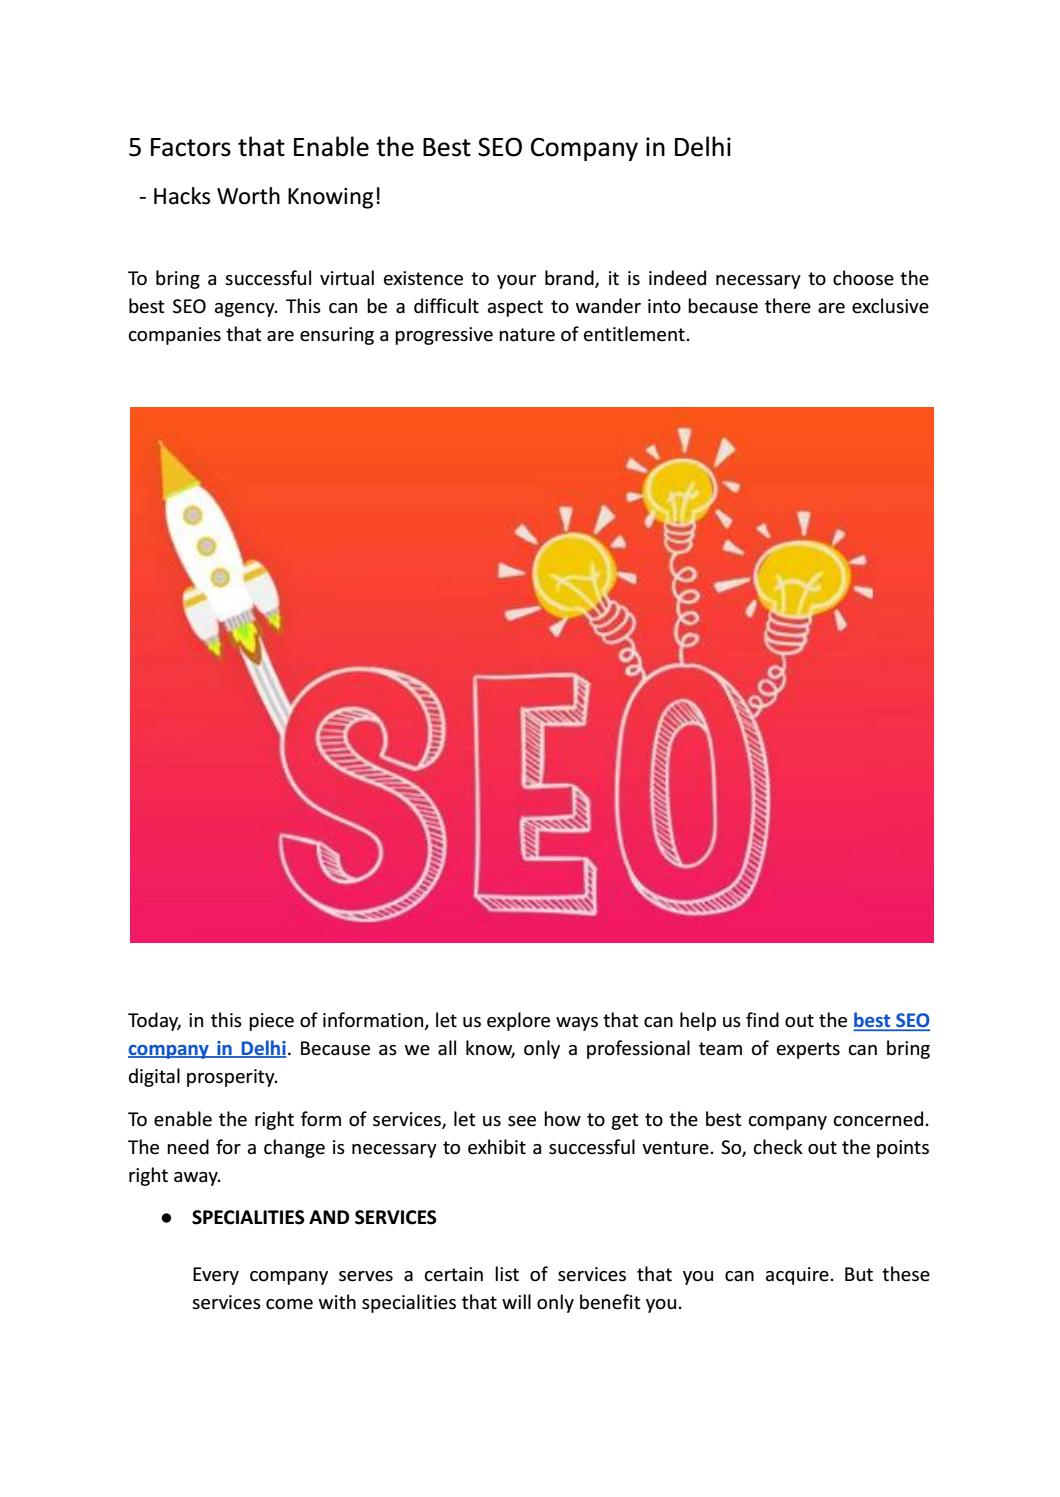 5 Factors that Enable the Best SEO Company in Delhi